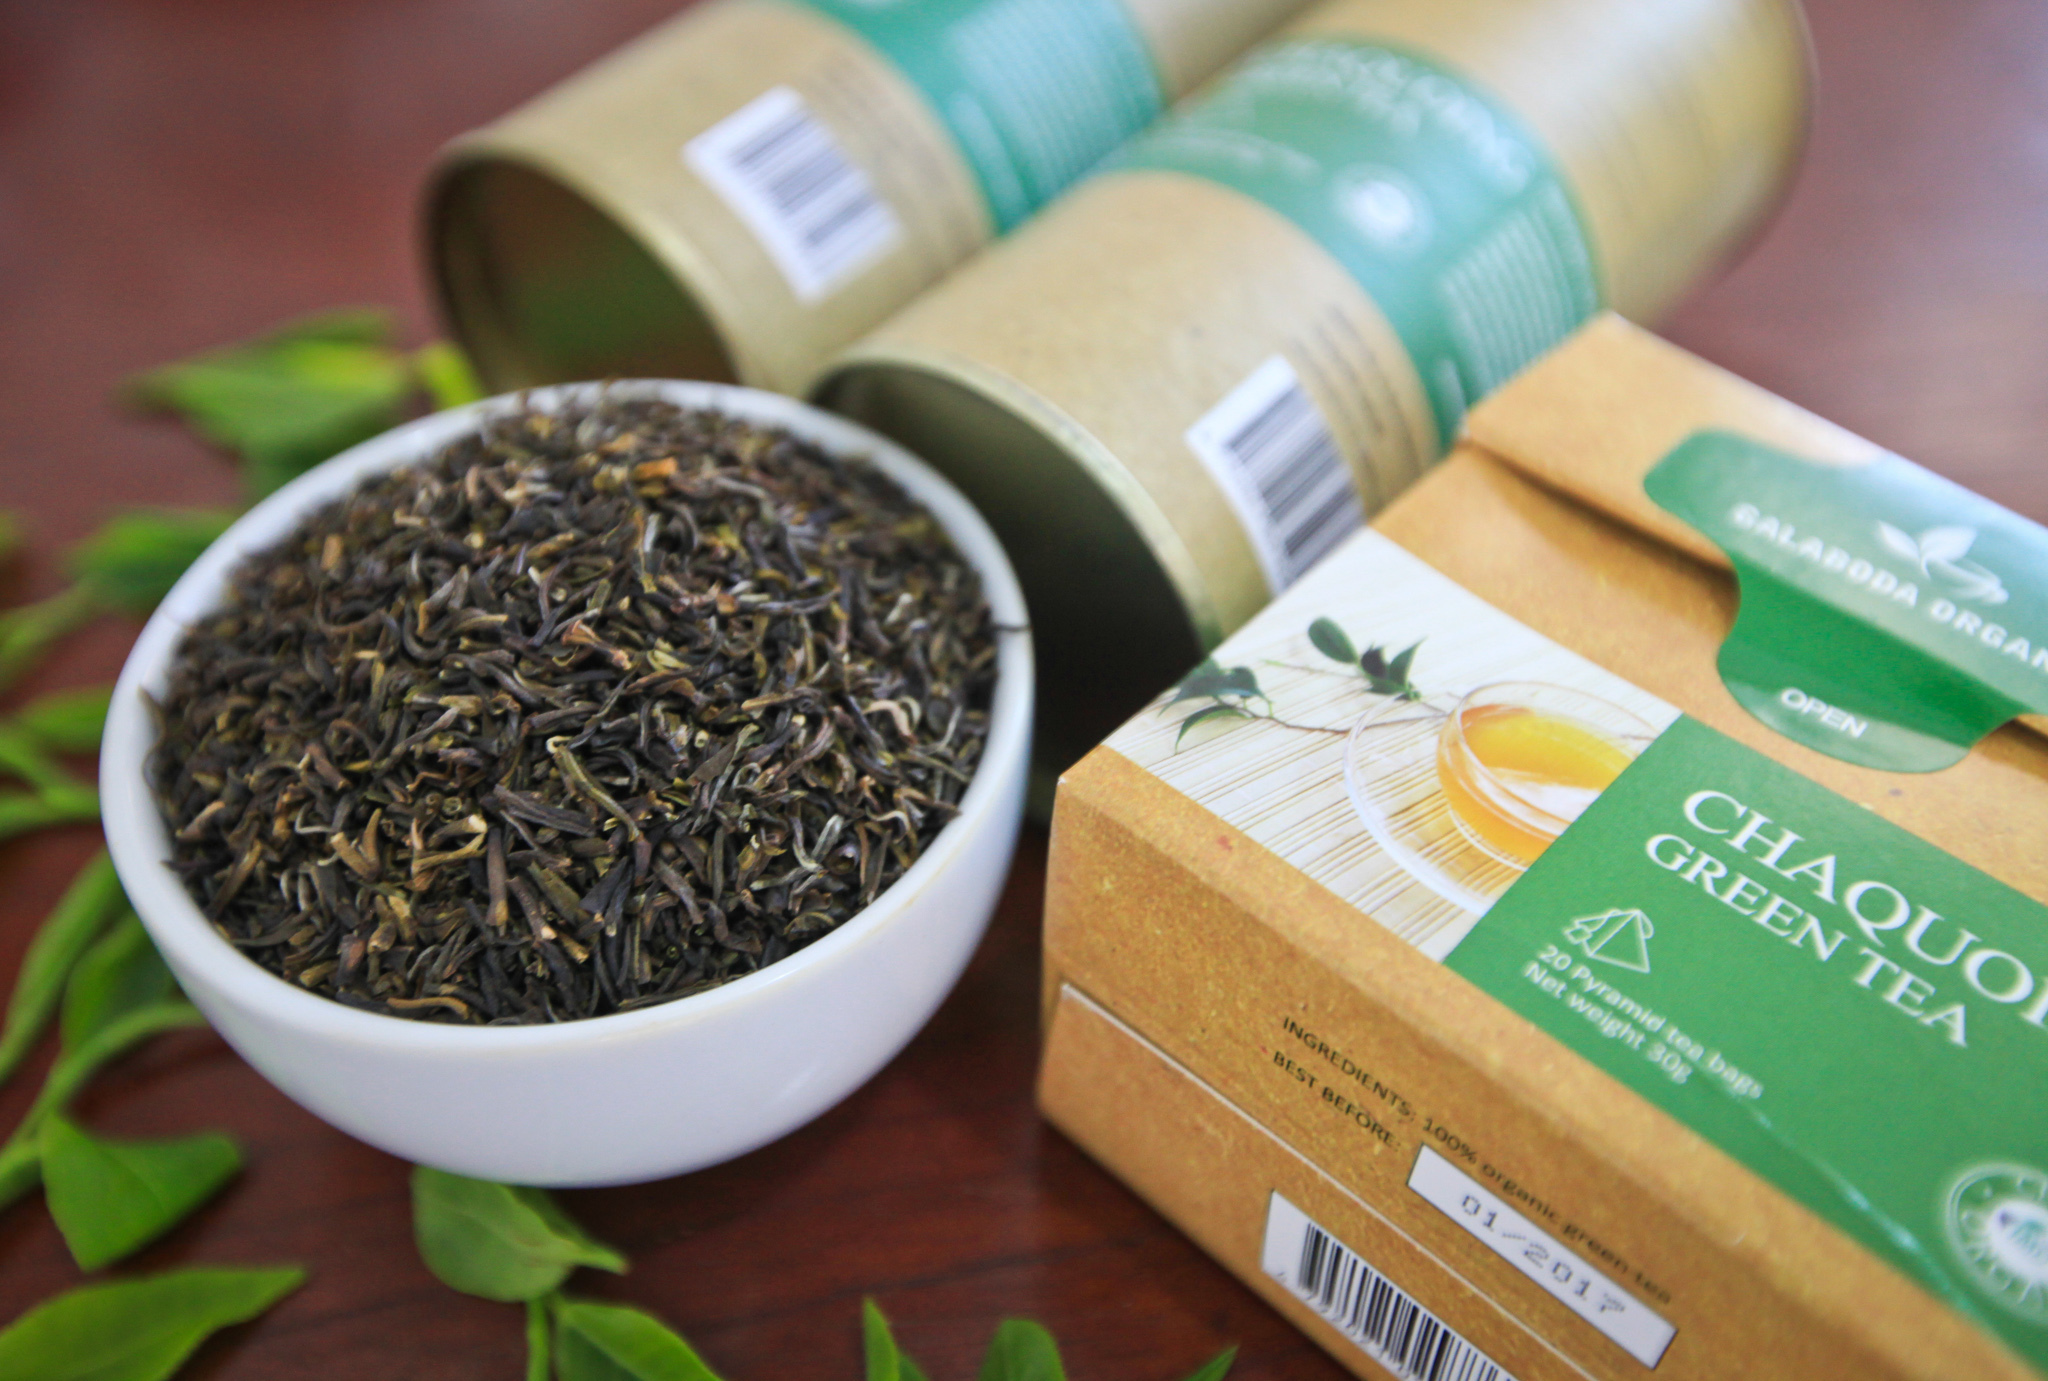 Refresh with a cup of Sri Lankan tea